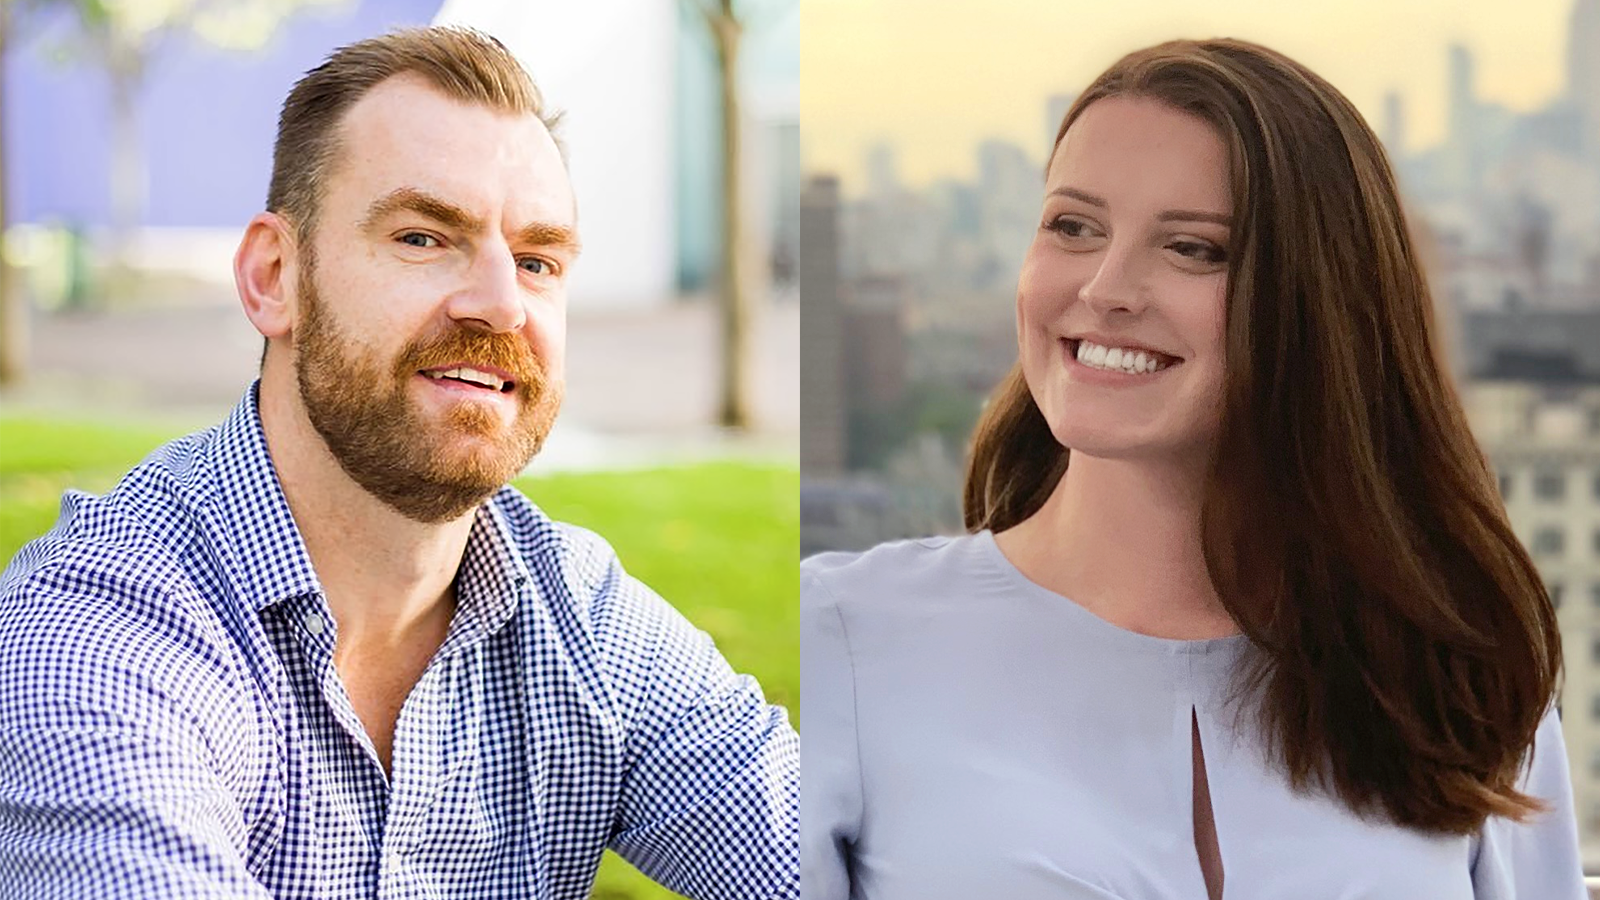 A headshot of the Daylight cofounders